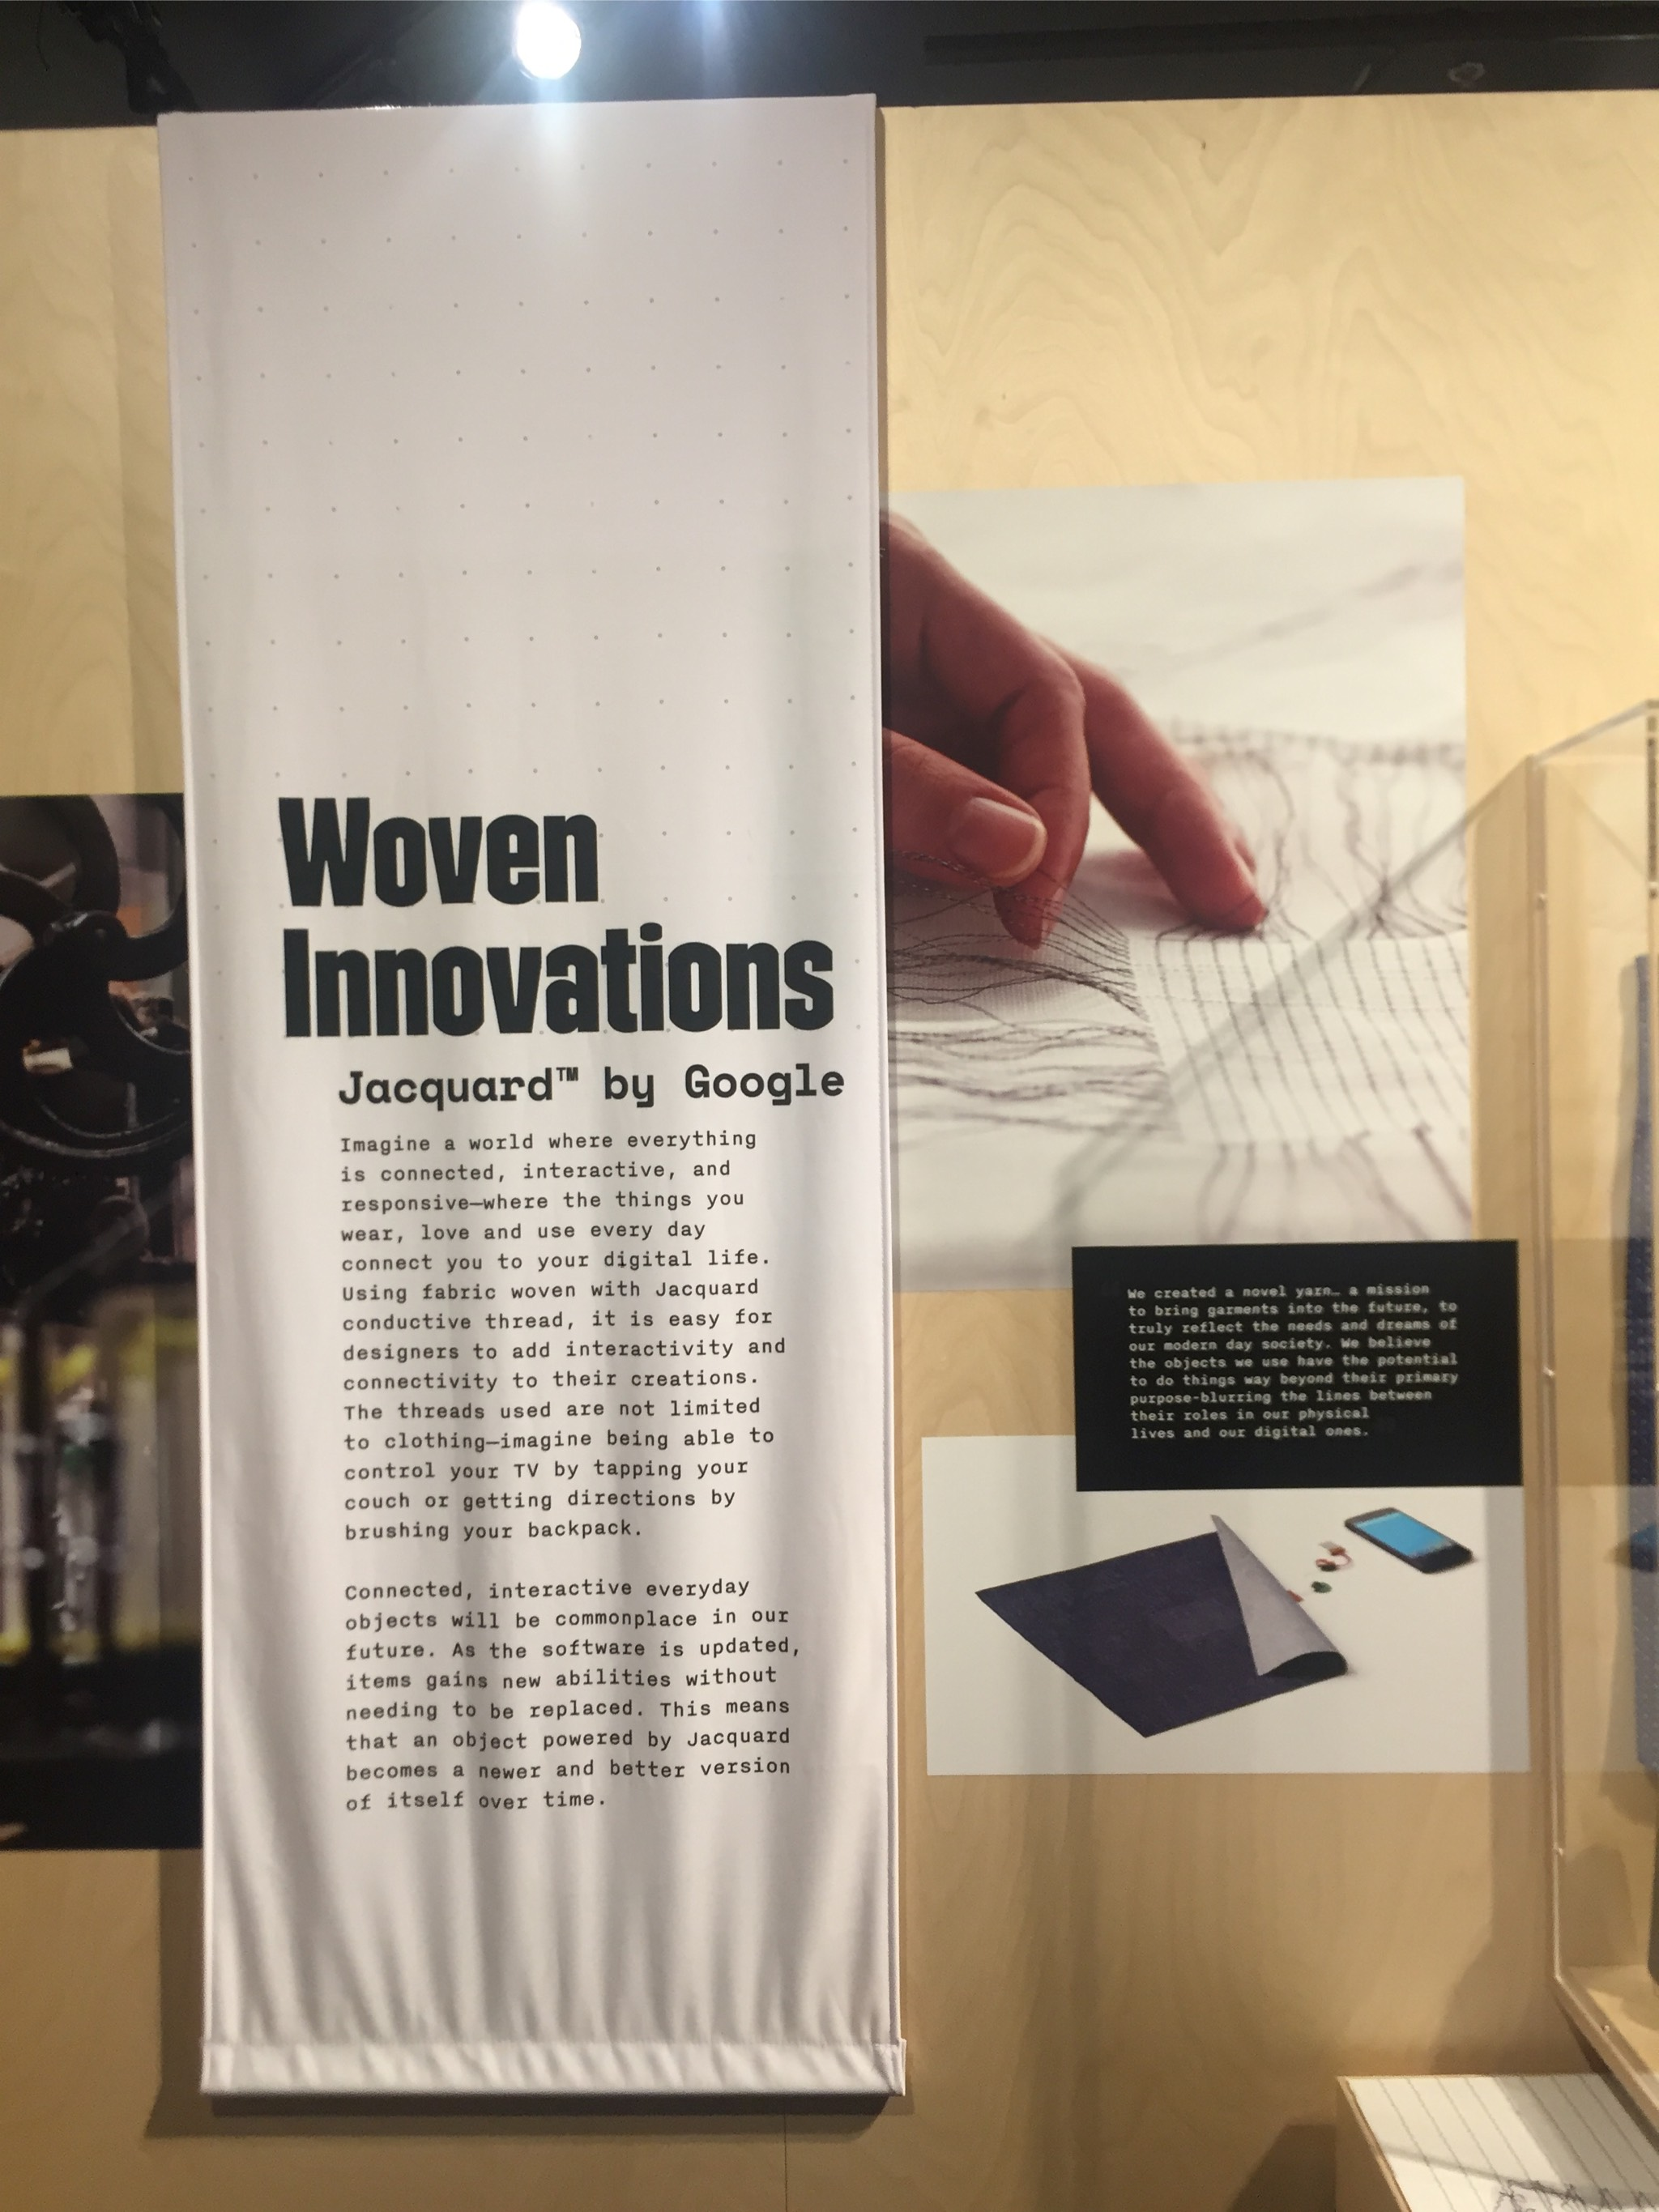 Jacquard by Google integrates sensor grids into fabric, creating interactive surfaces that function as a touchscreen.